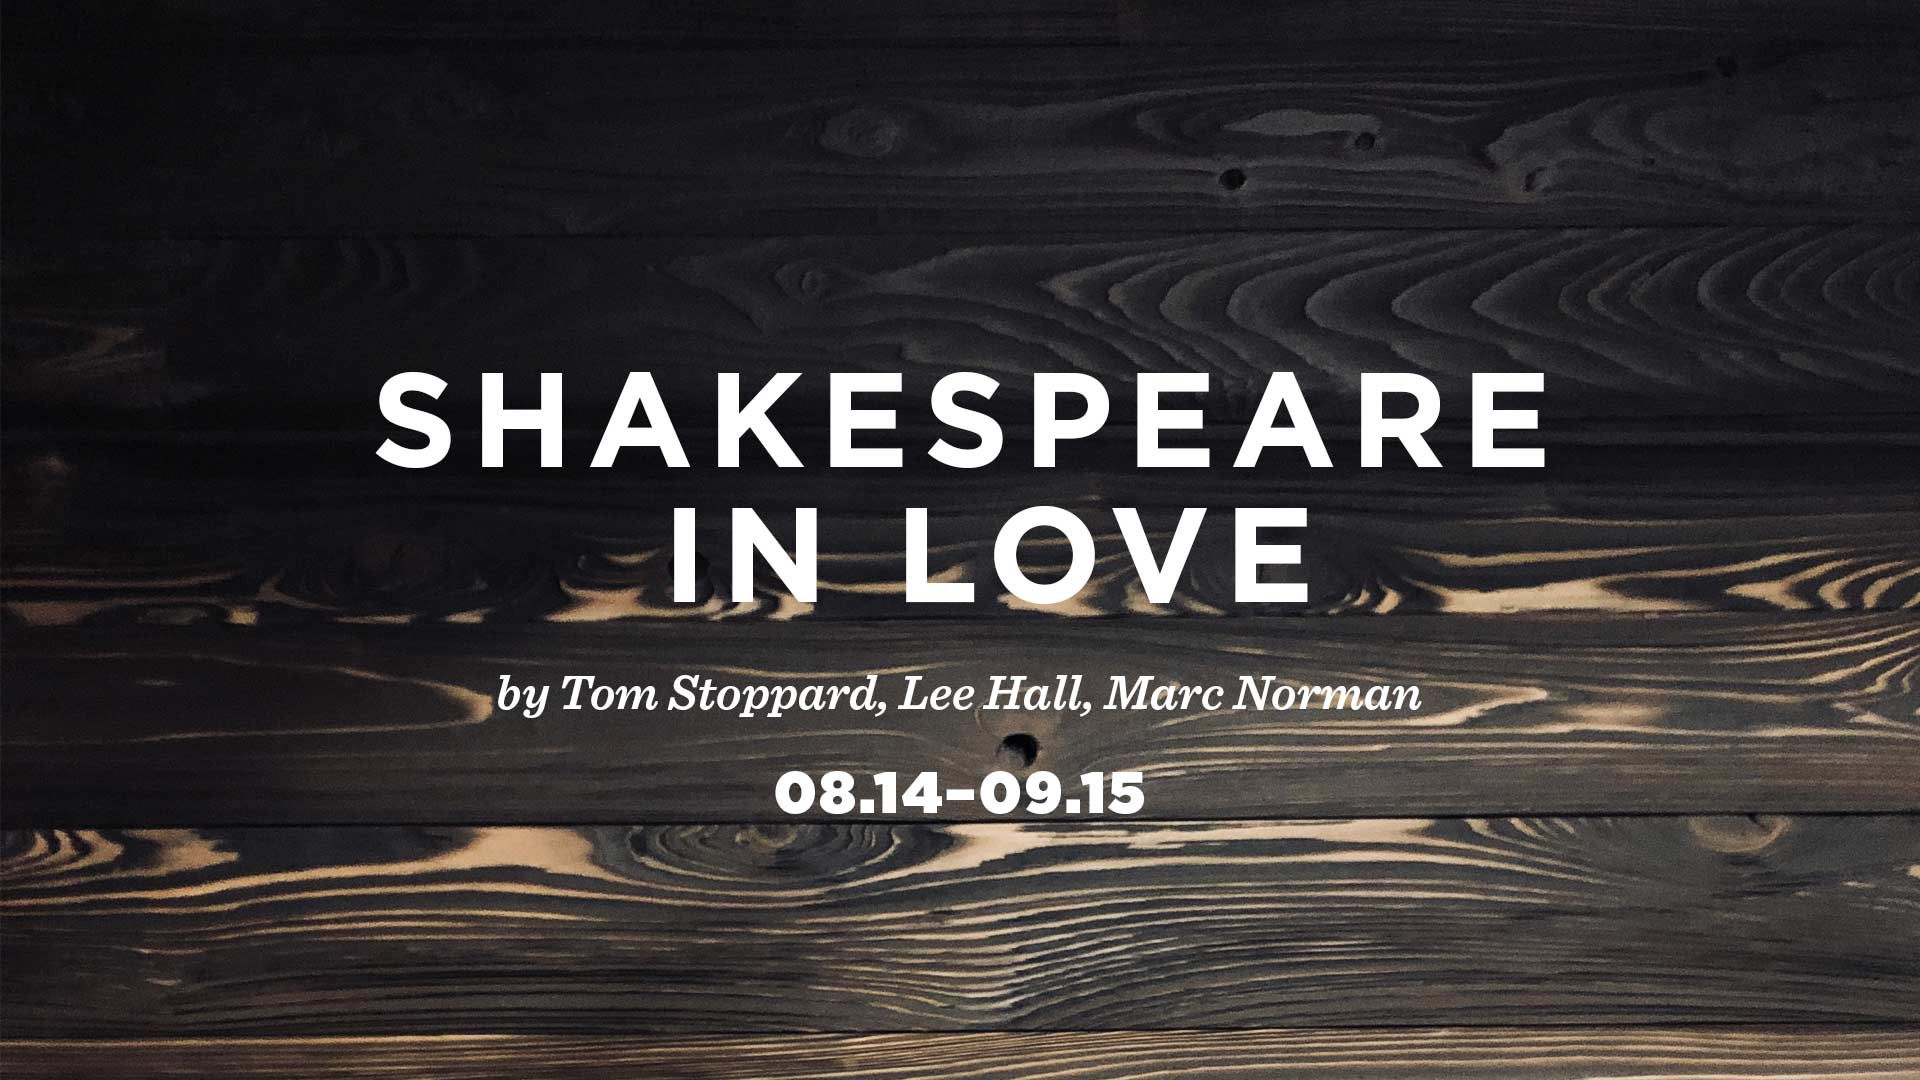 Show-Website-Page-Header-Shakespeare-In-Love-1920x1080-2.jpg